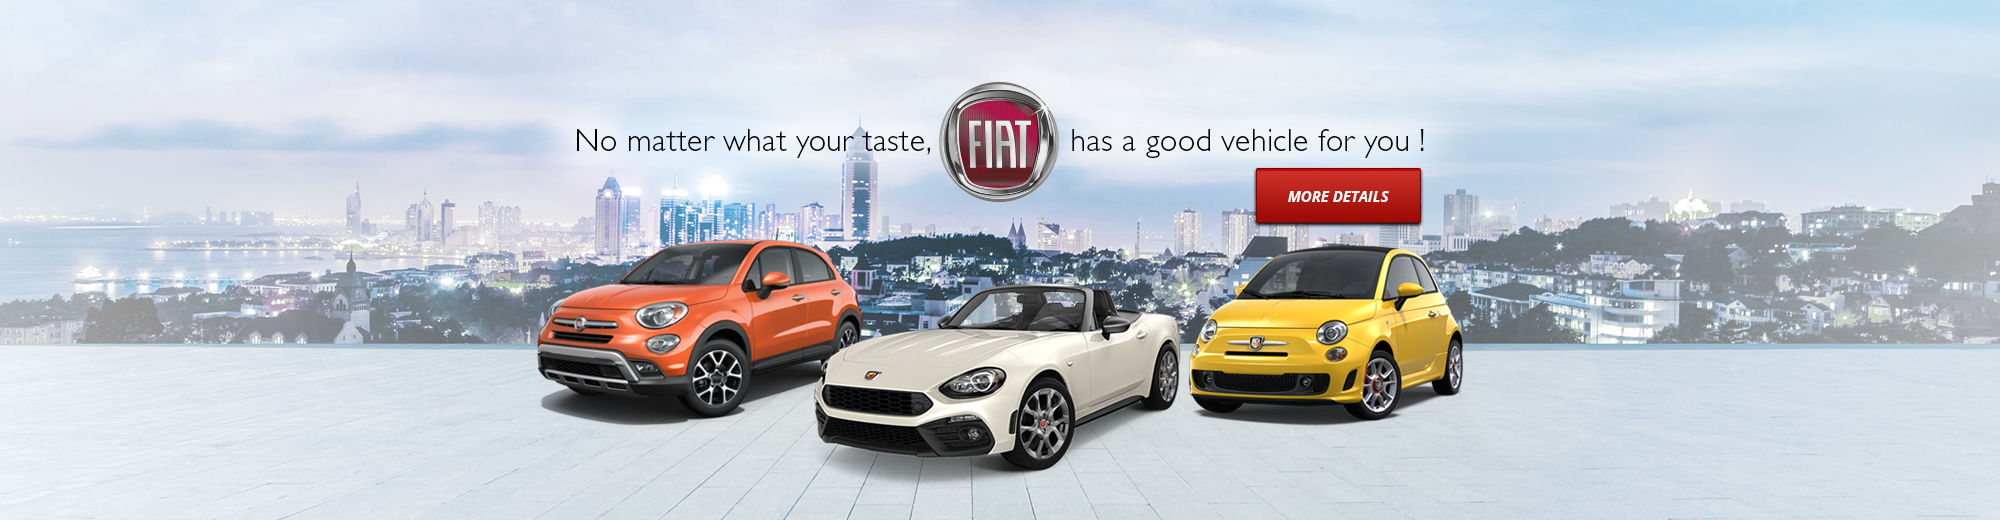 No matter what your taste, FIAT has a good vehicle for you !